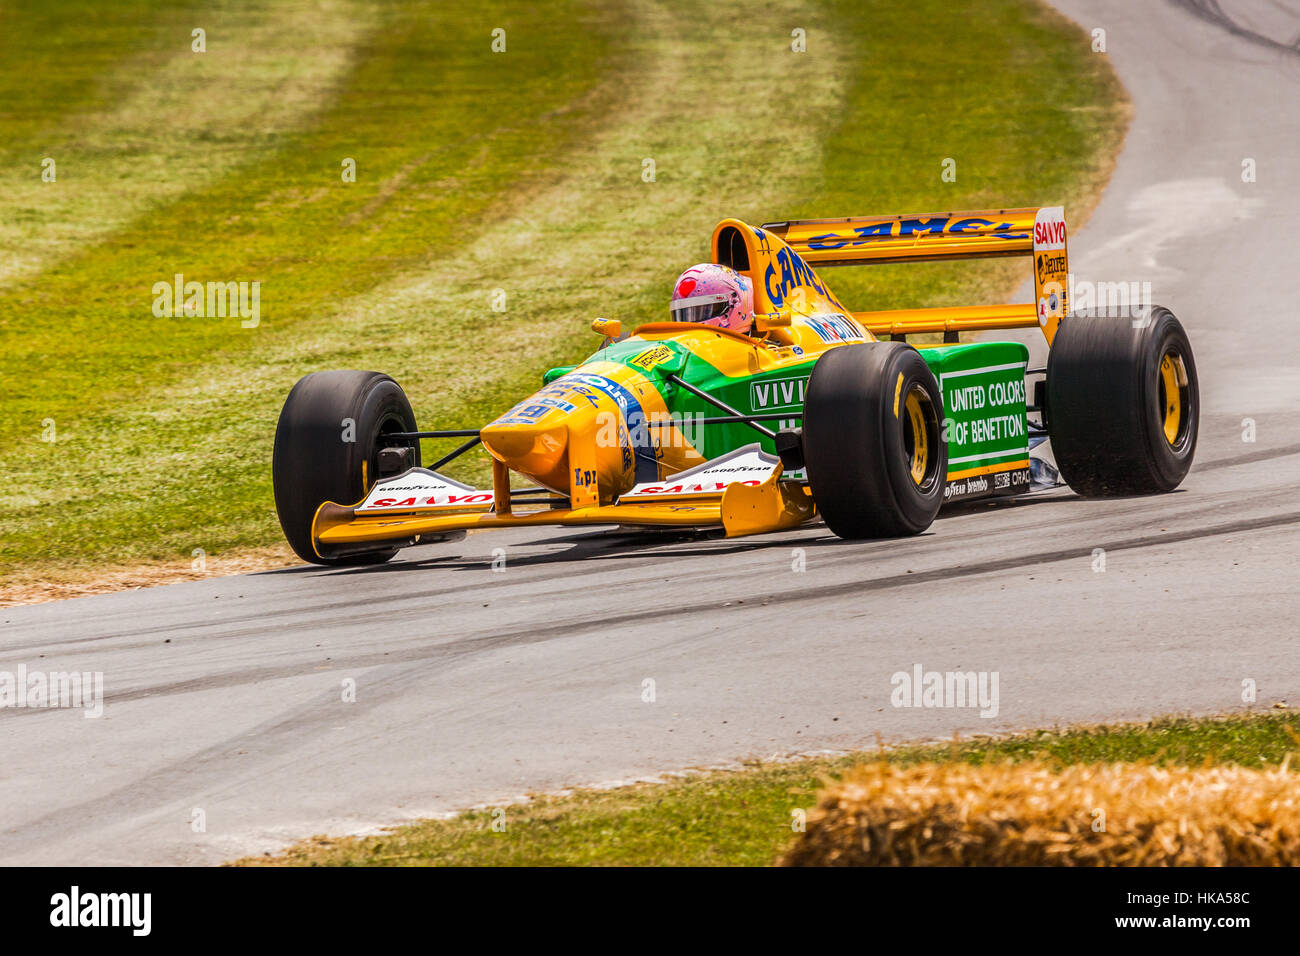 Benetton F1 racing car at Goodwood Festival of Speed 2014 - Stock Image